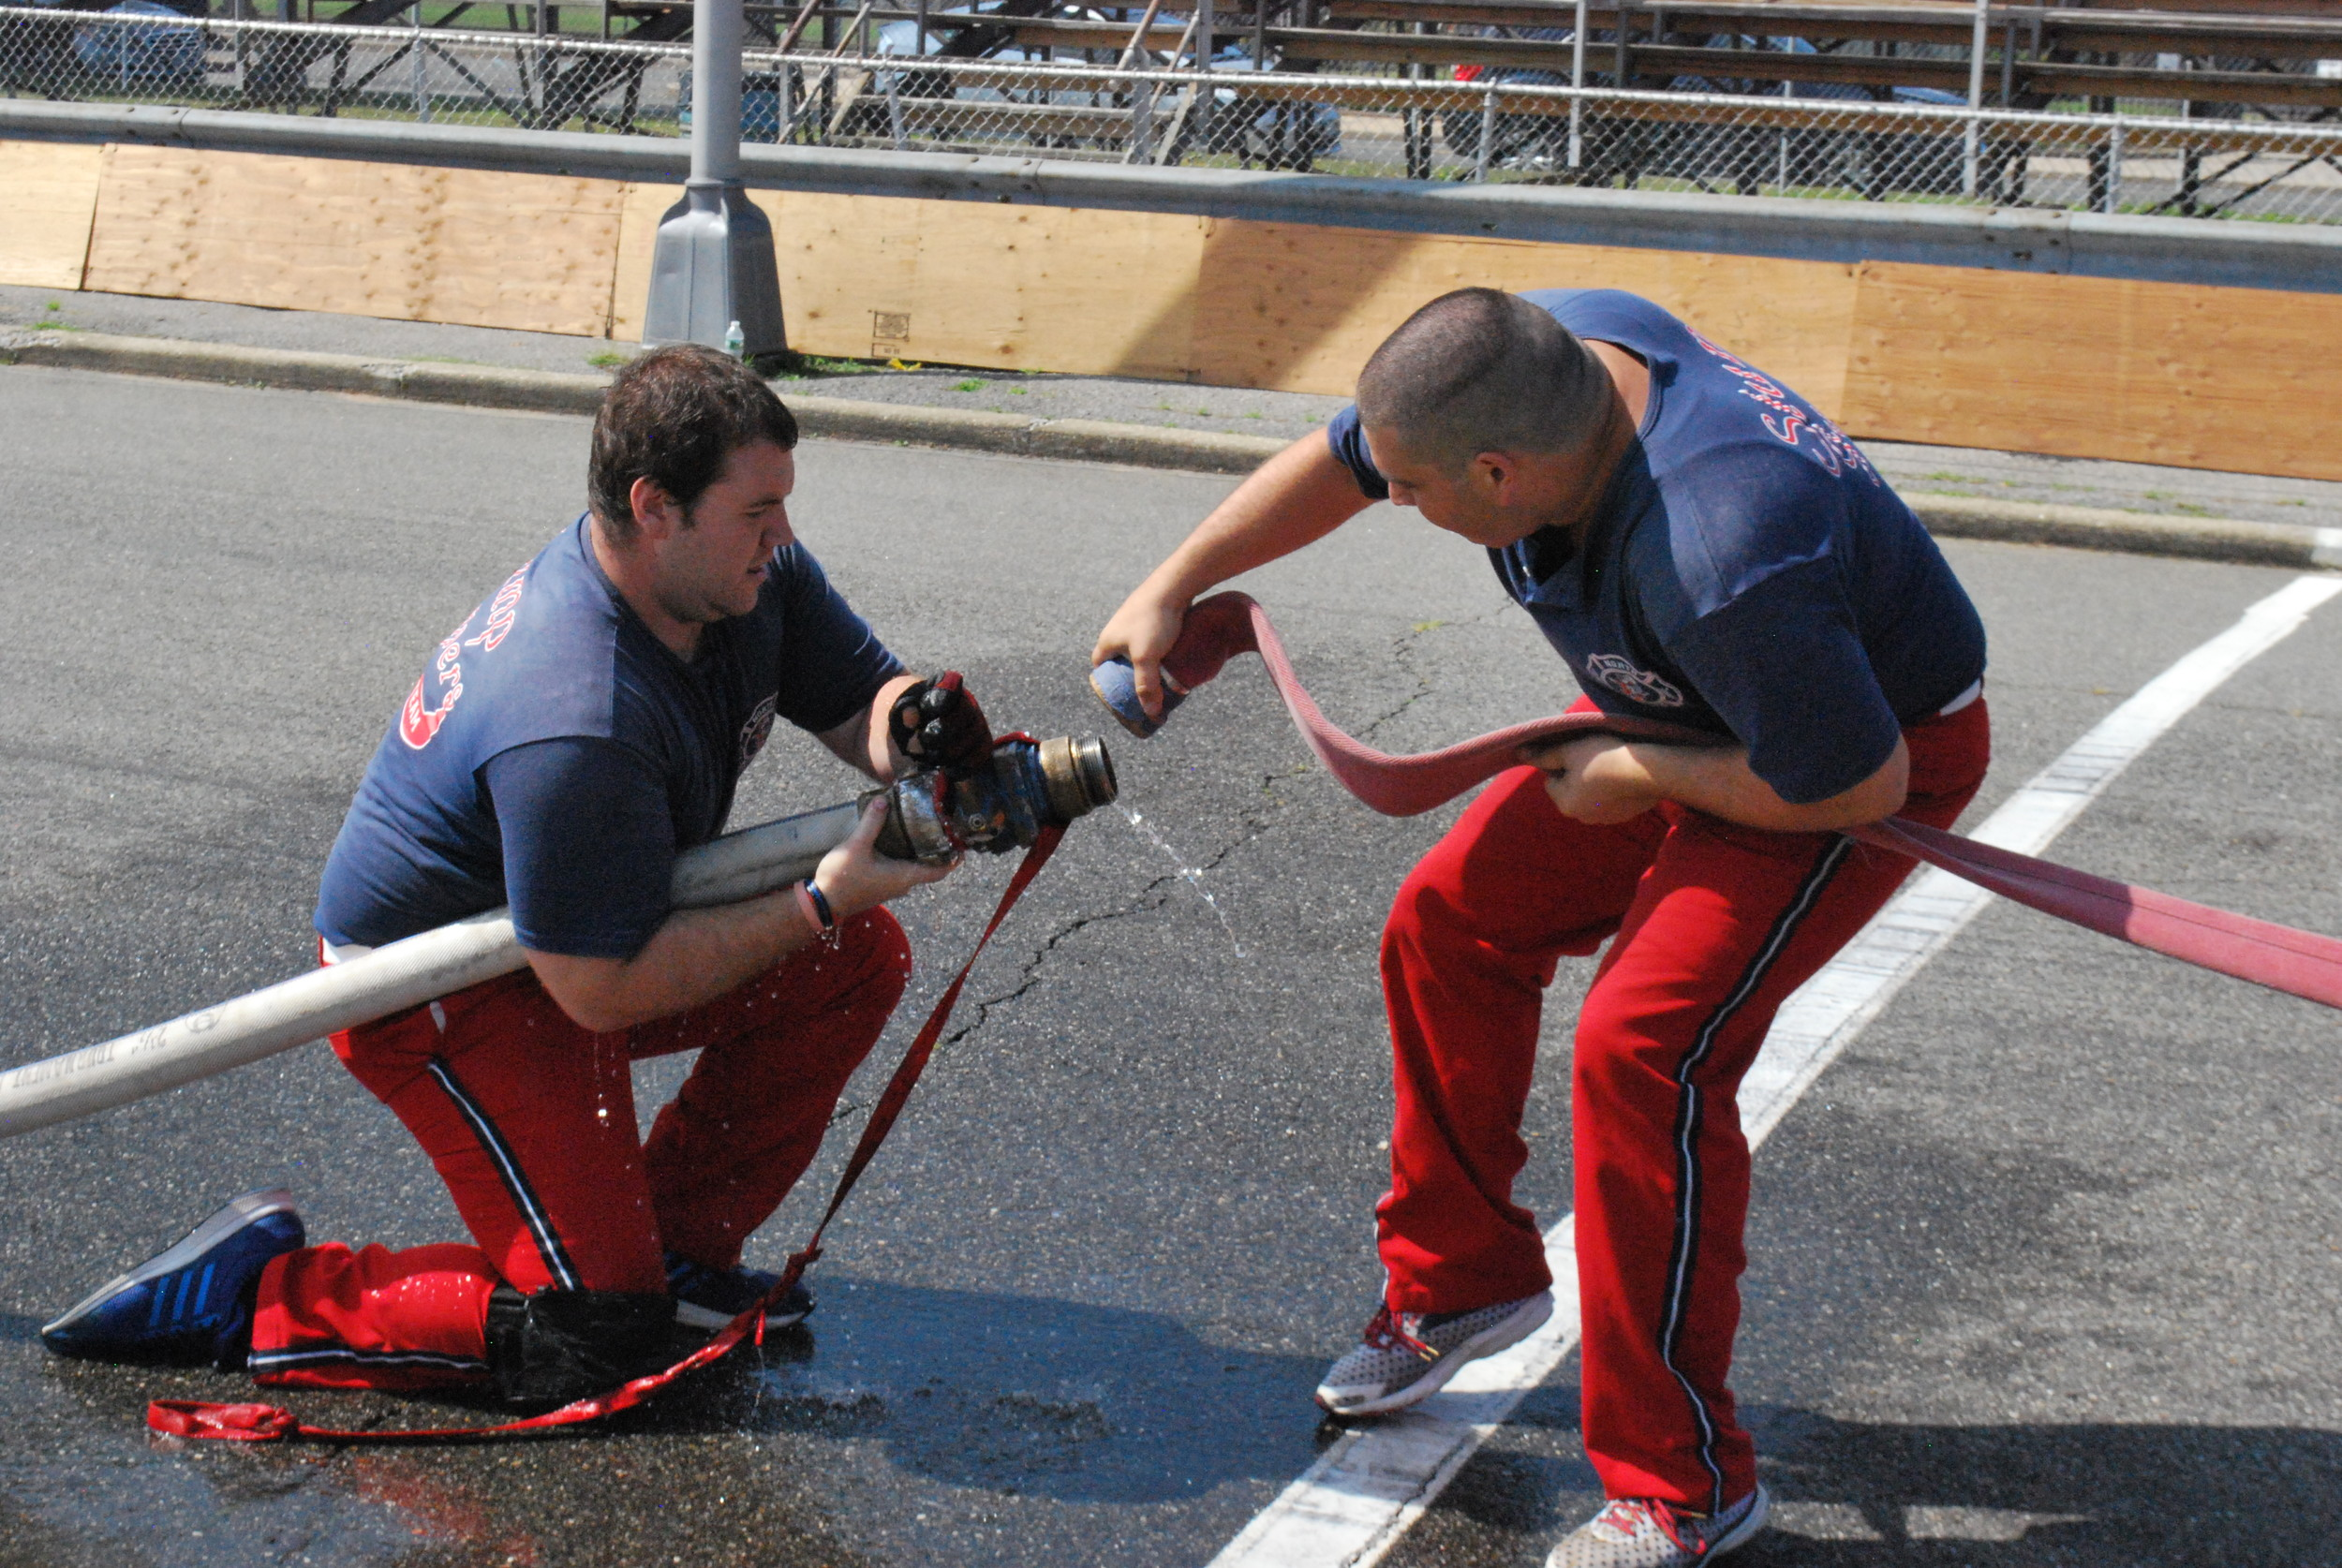 Scott McLaughlin and Anthony Wilders, both of the North Merrick Fire Department, worked together to set up their team's fire hose.